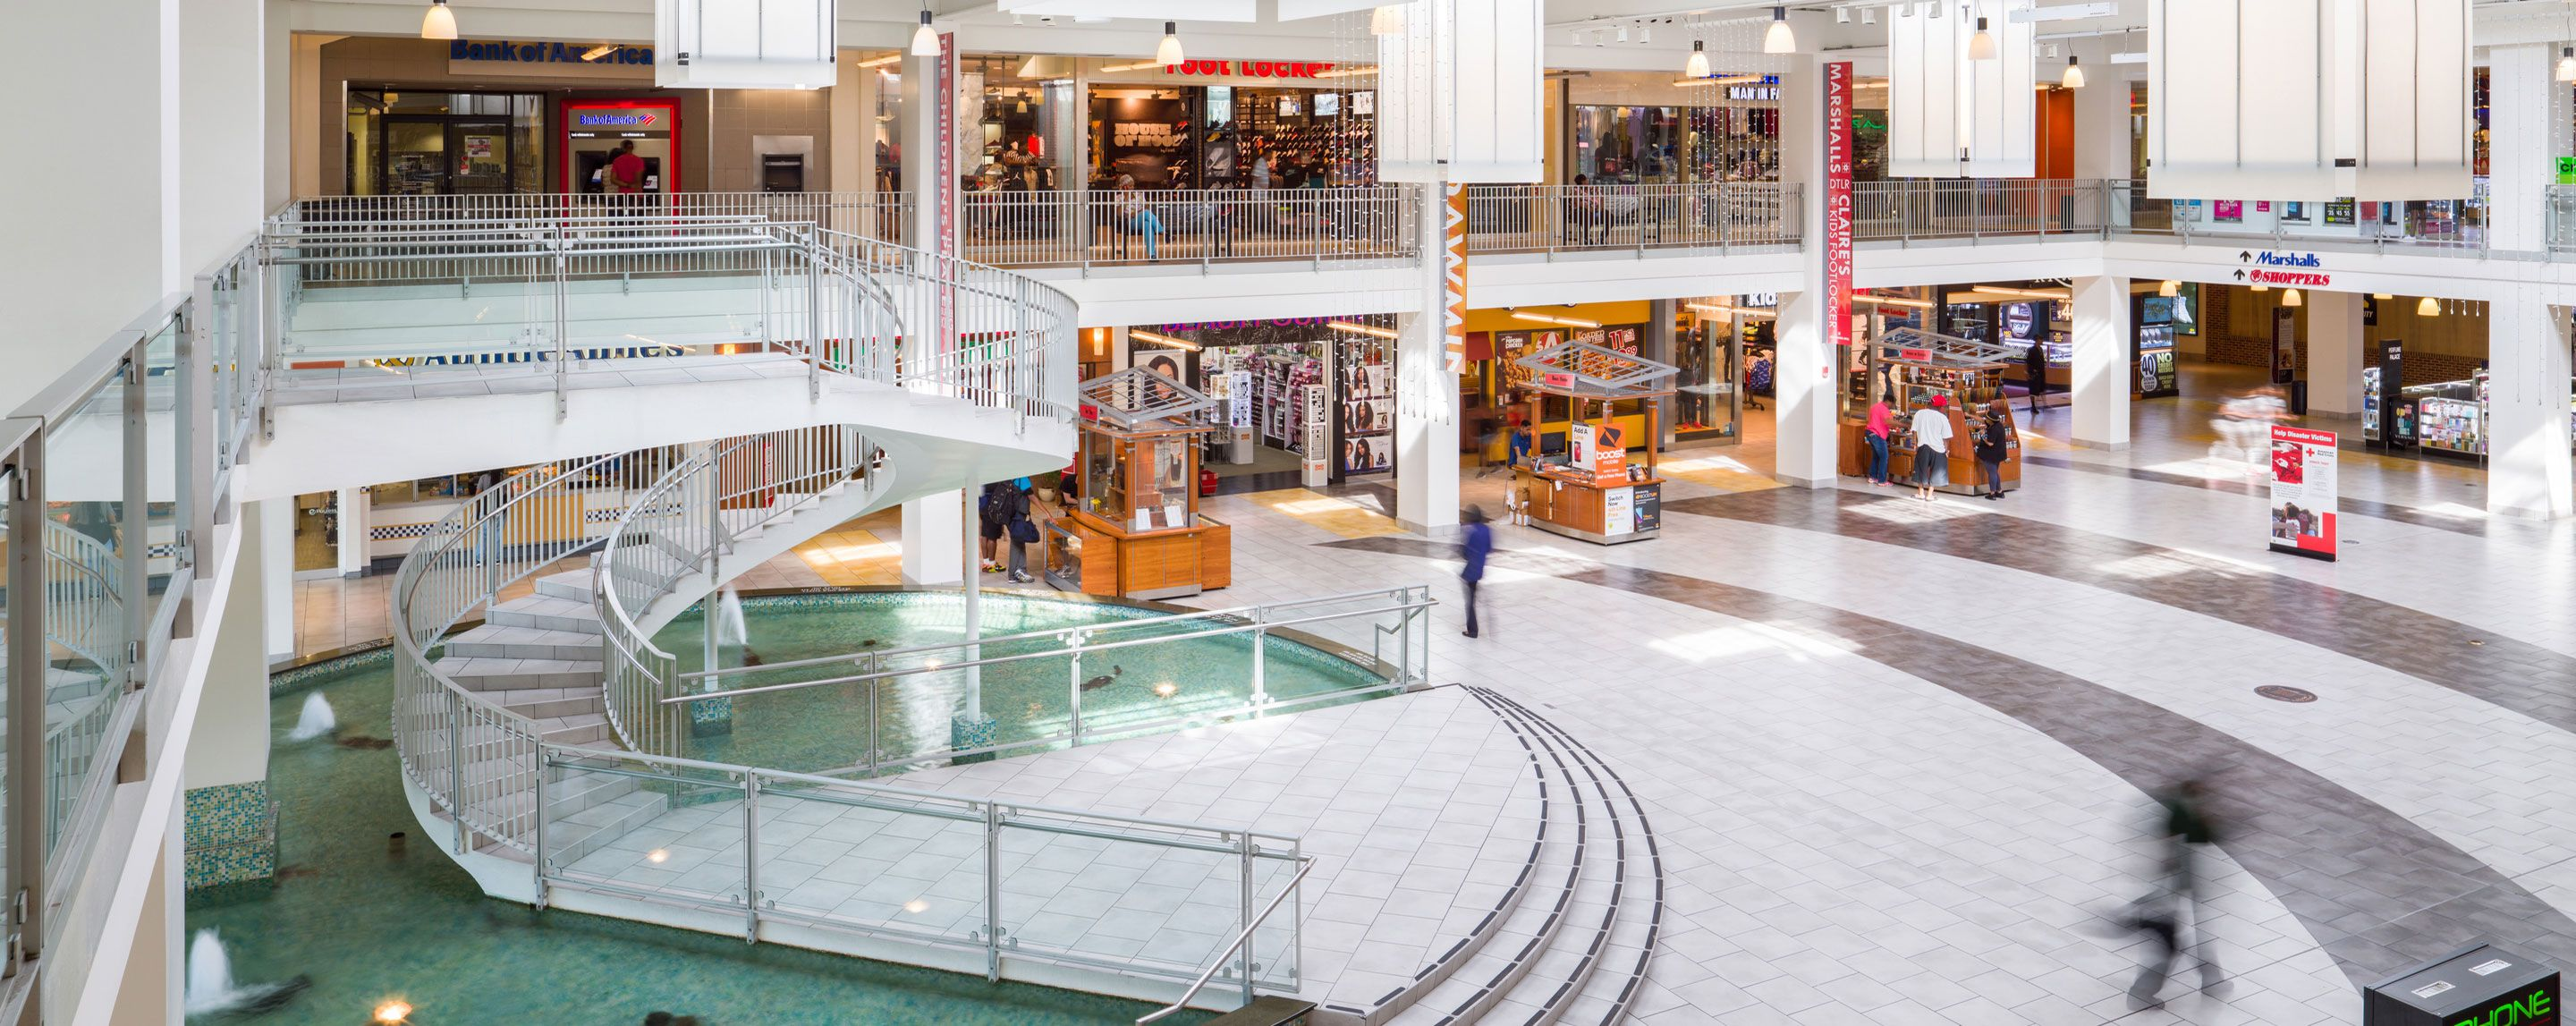 A large shopping mall with 2 floors and a spiral staircase.